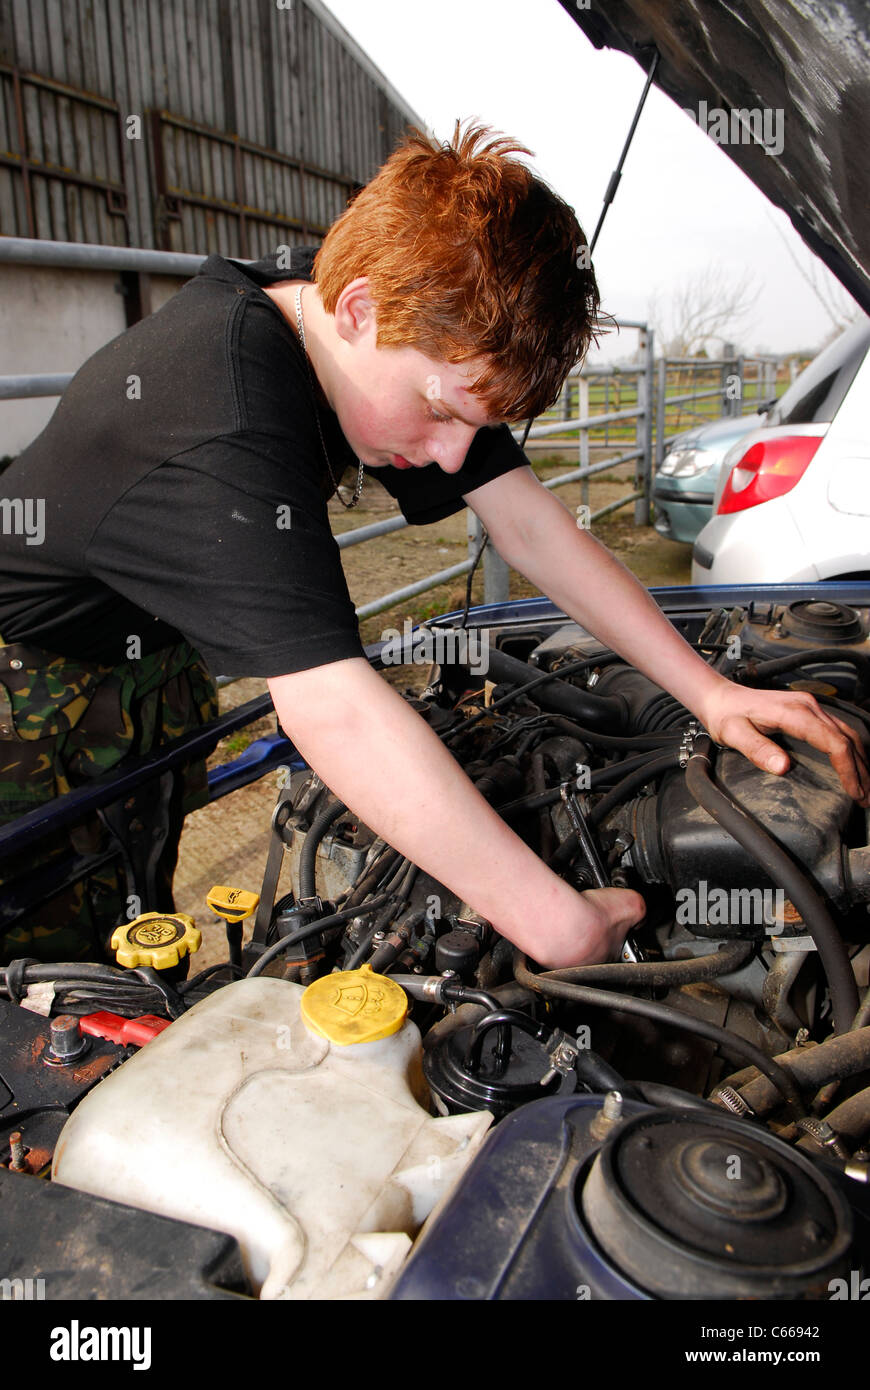 Youth learning car mechanic skills at an initiative to foster teamwork and confidence skills amongst disadvantaged Stock Photo